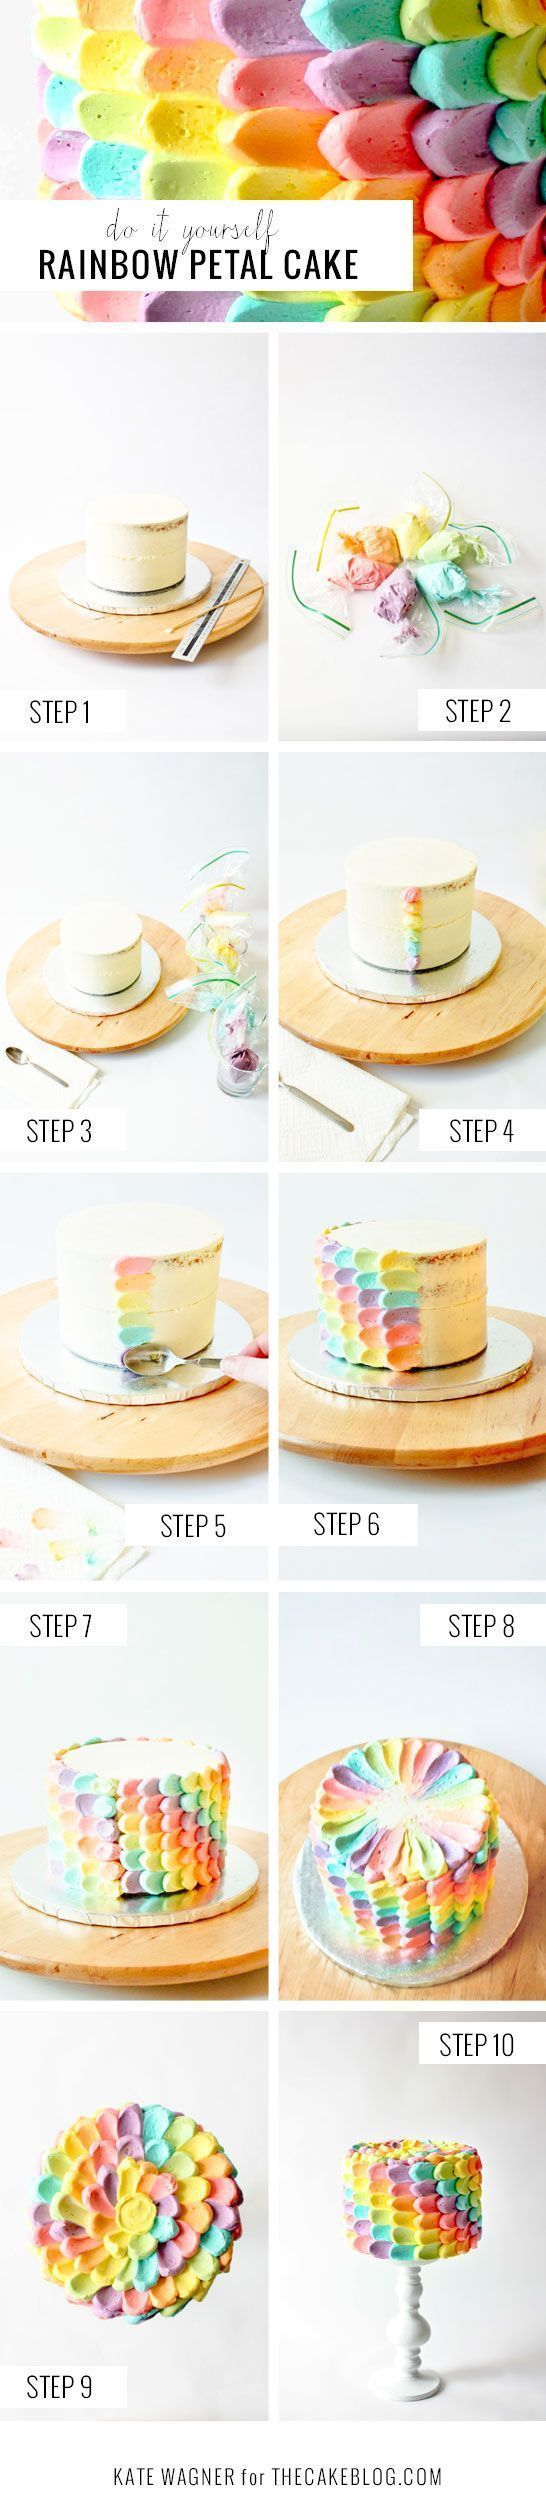 So beautiful! I need to make a cake now to try this...a very merry un birthday to me.